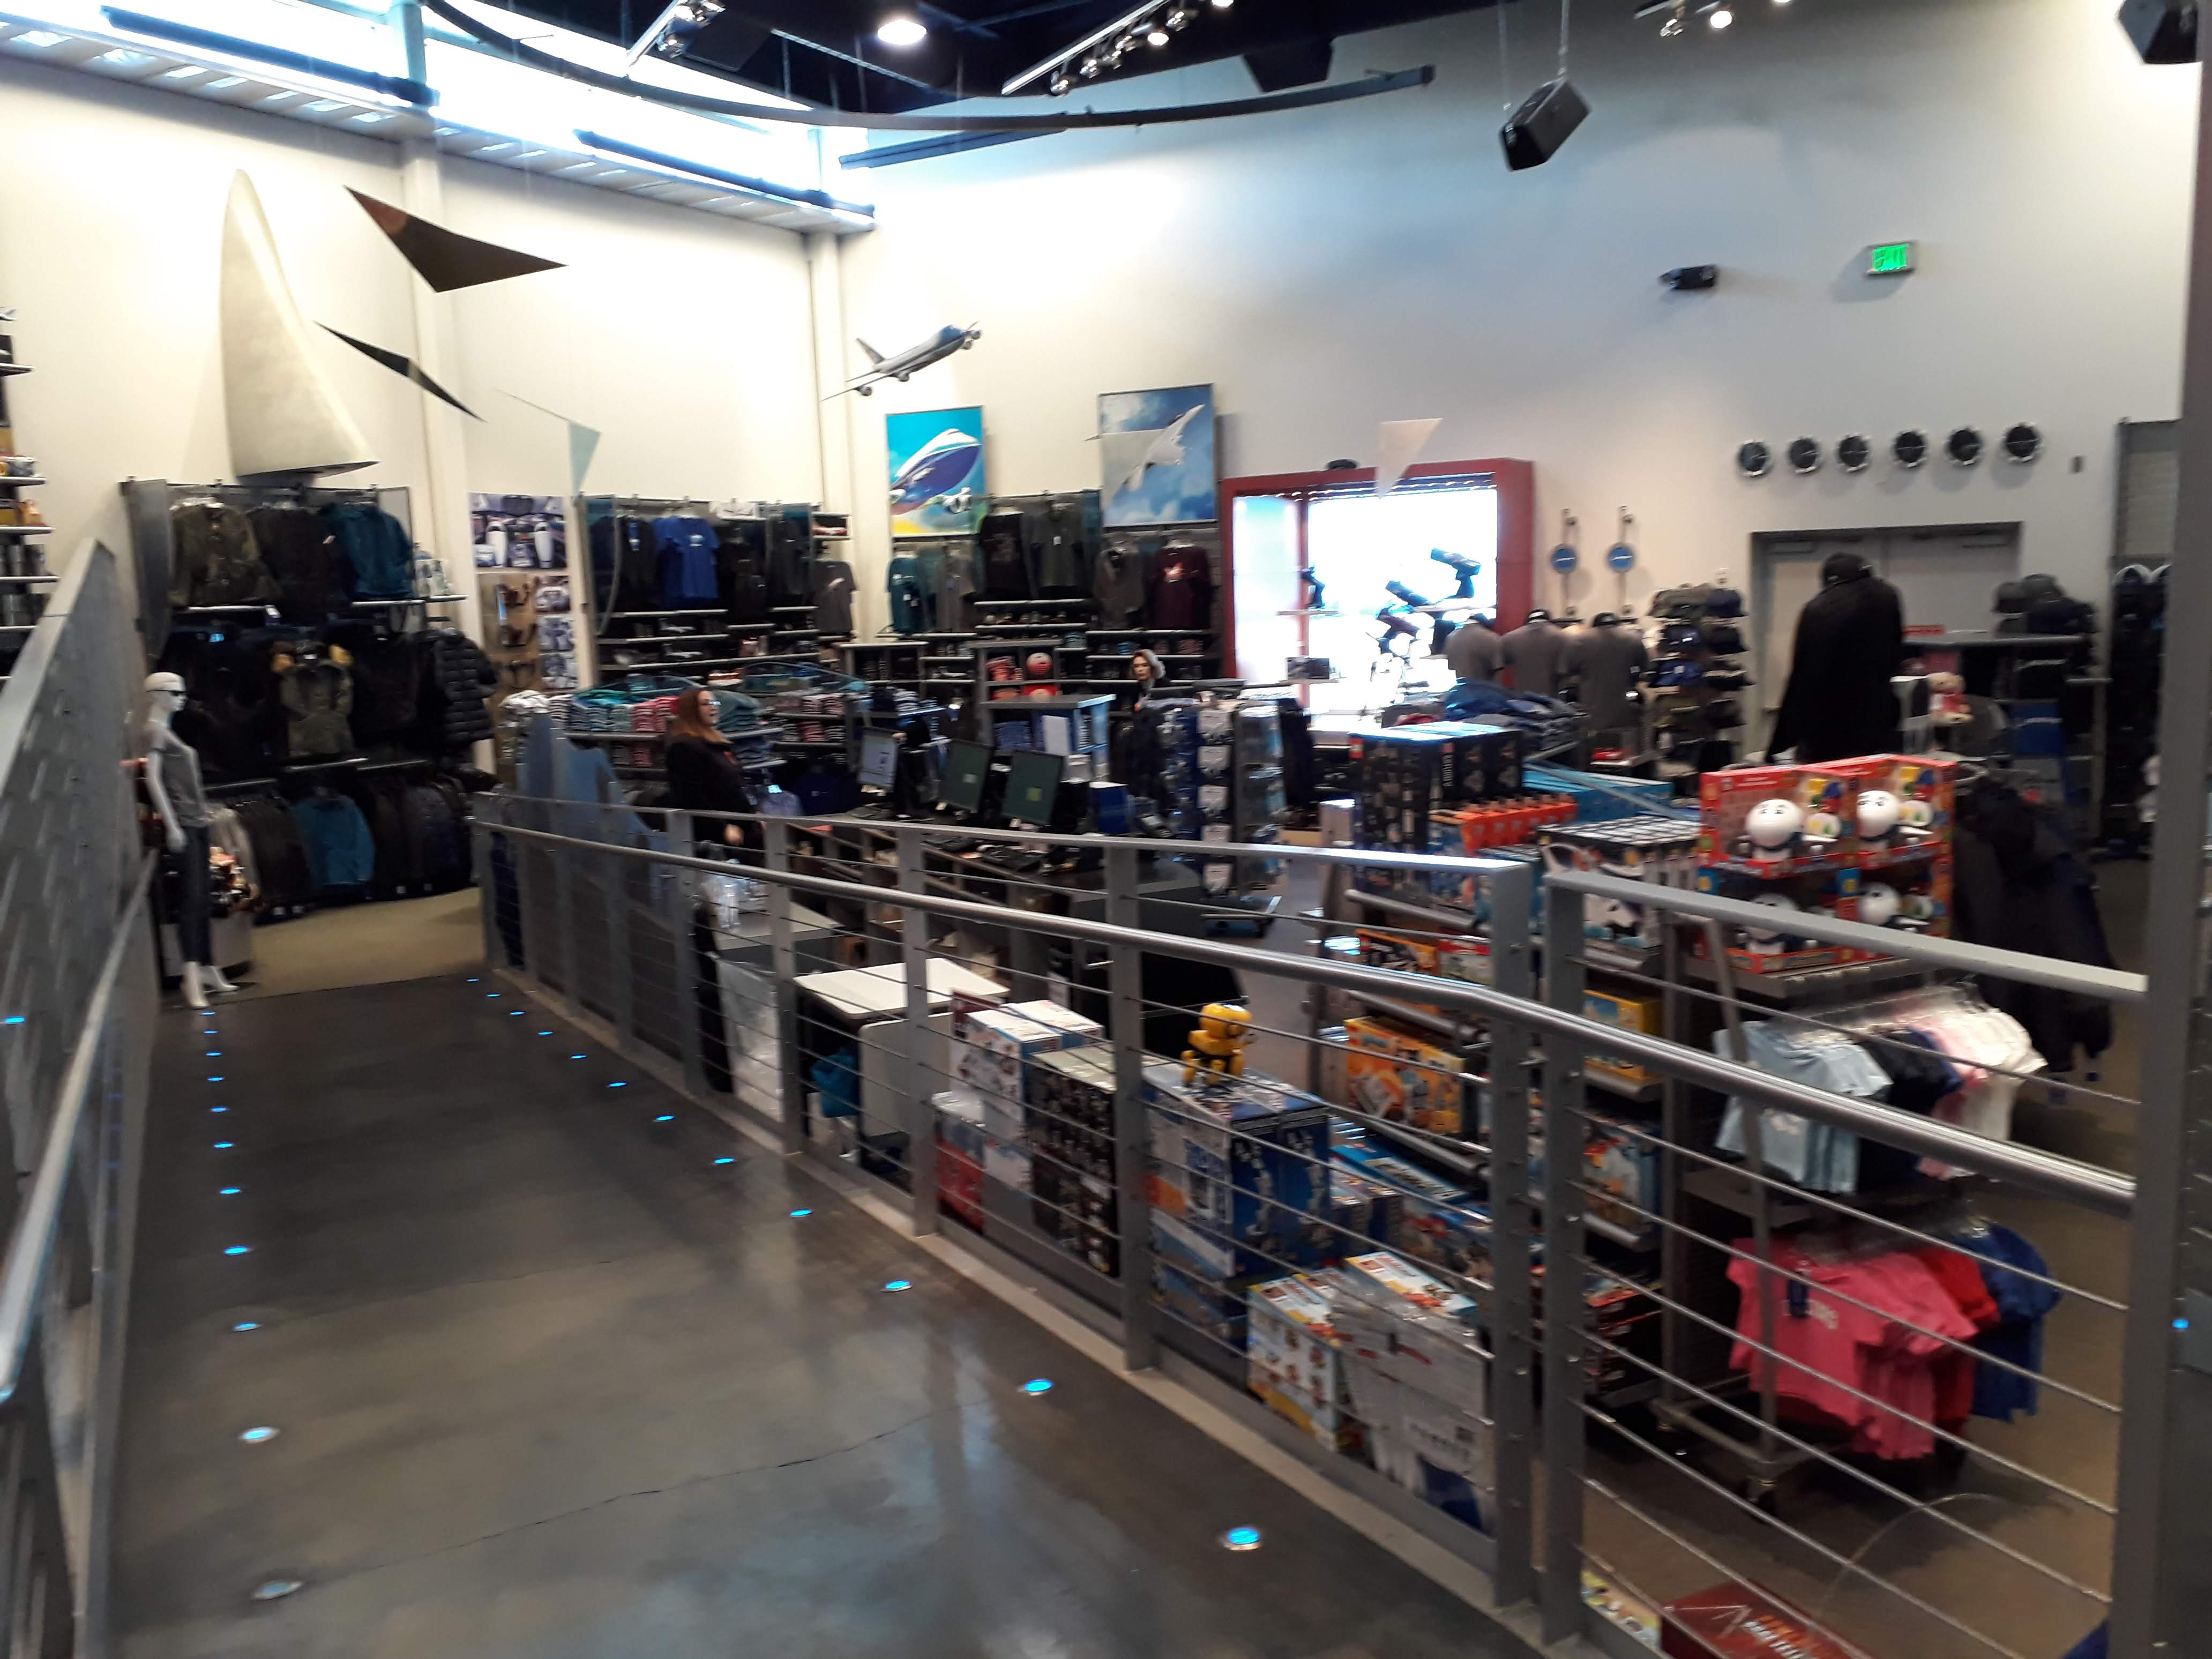 Boeing factory tour - The Boeing Shop